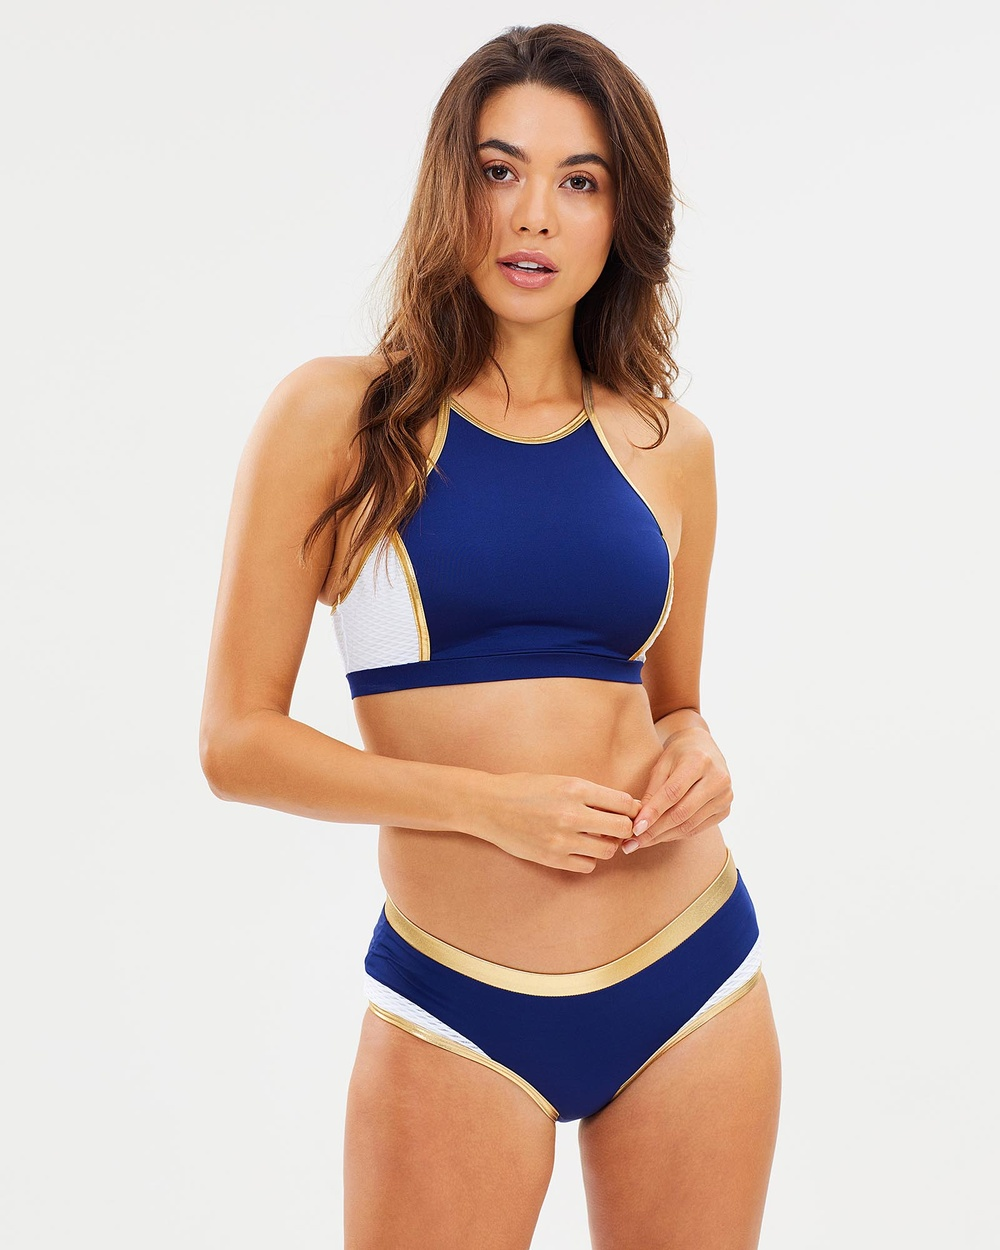 Aqua Blu Australia Athletica D DD T Bar Top & Surf Pant Set Bikini Set Navy Athletica D-DD T-Bar Top & Surf Pant Set